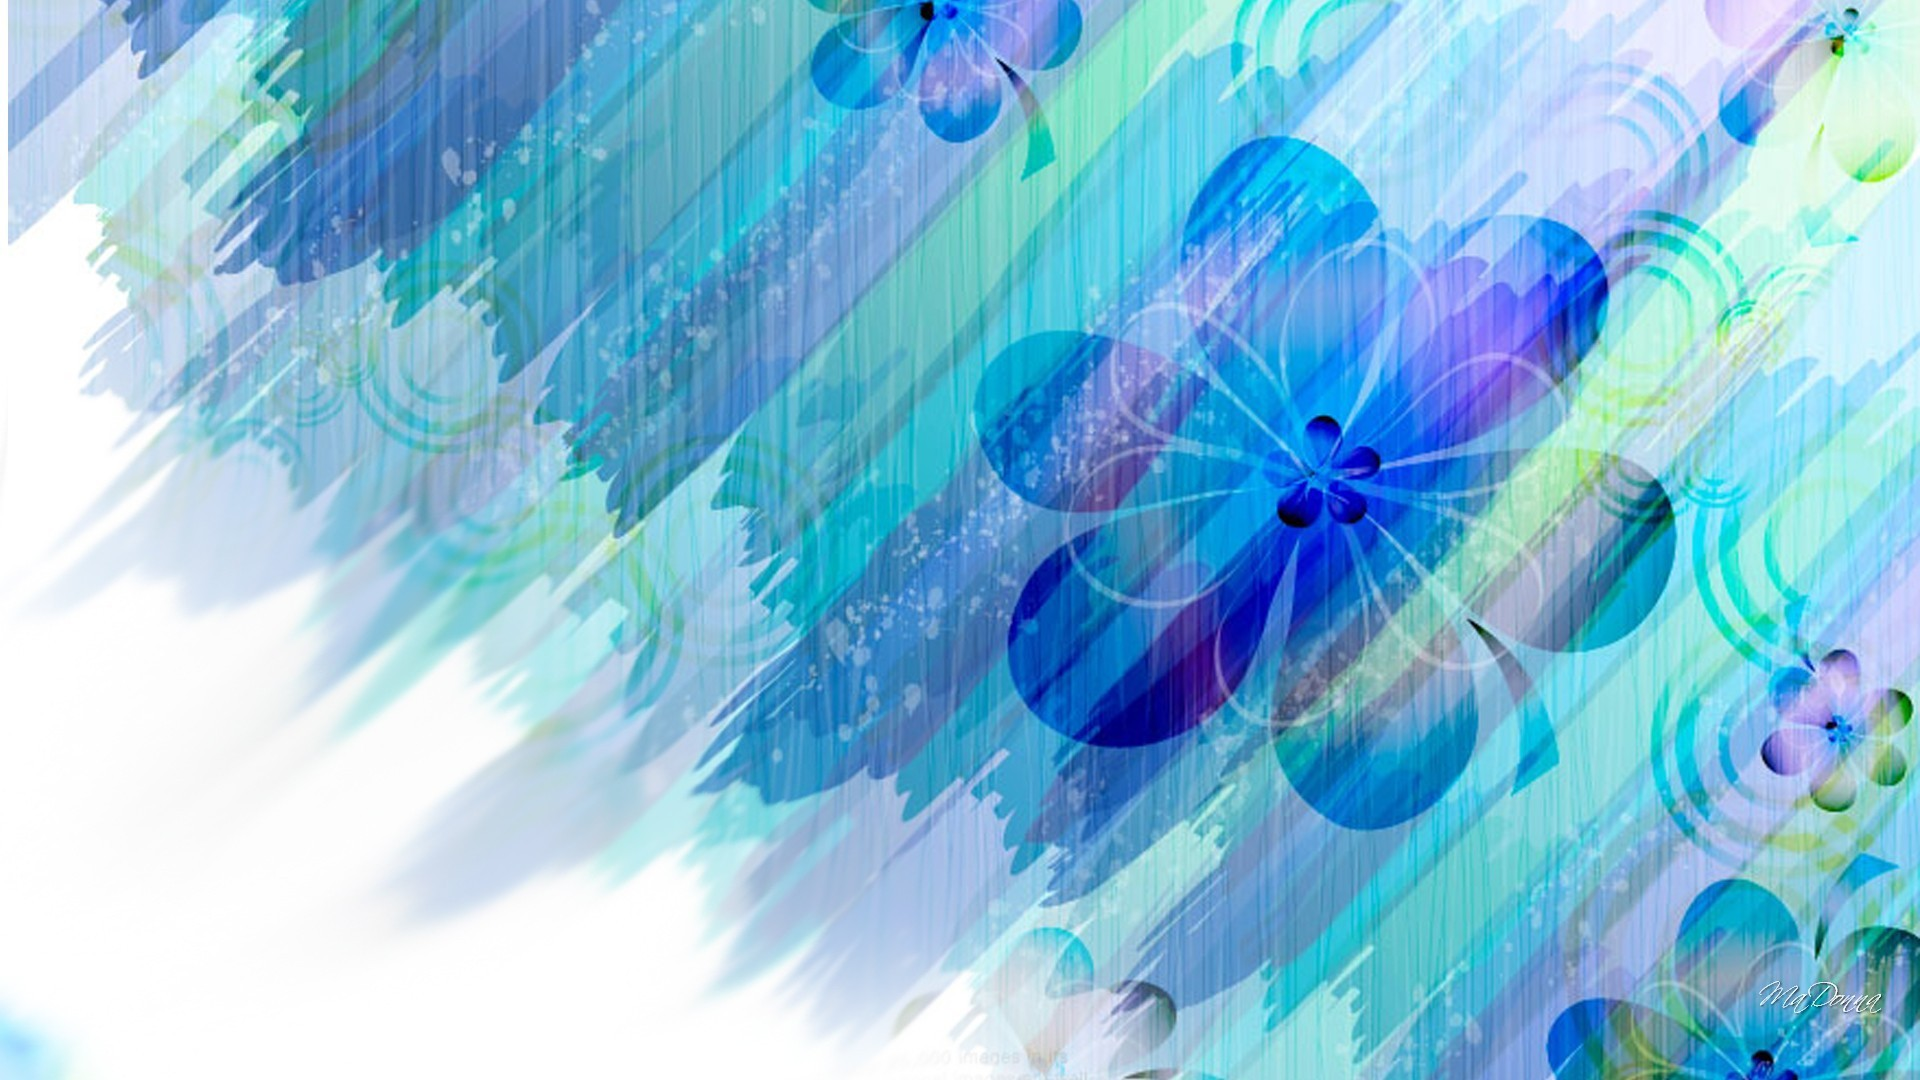 Abstract Blue Wallpaper 1080p Flip Wallpapers Download 1920x1080